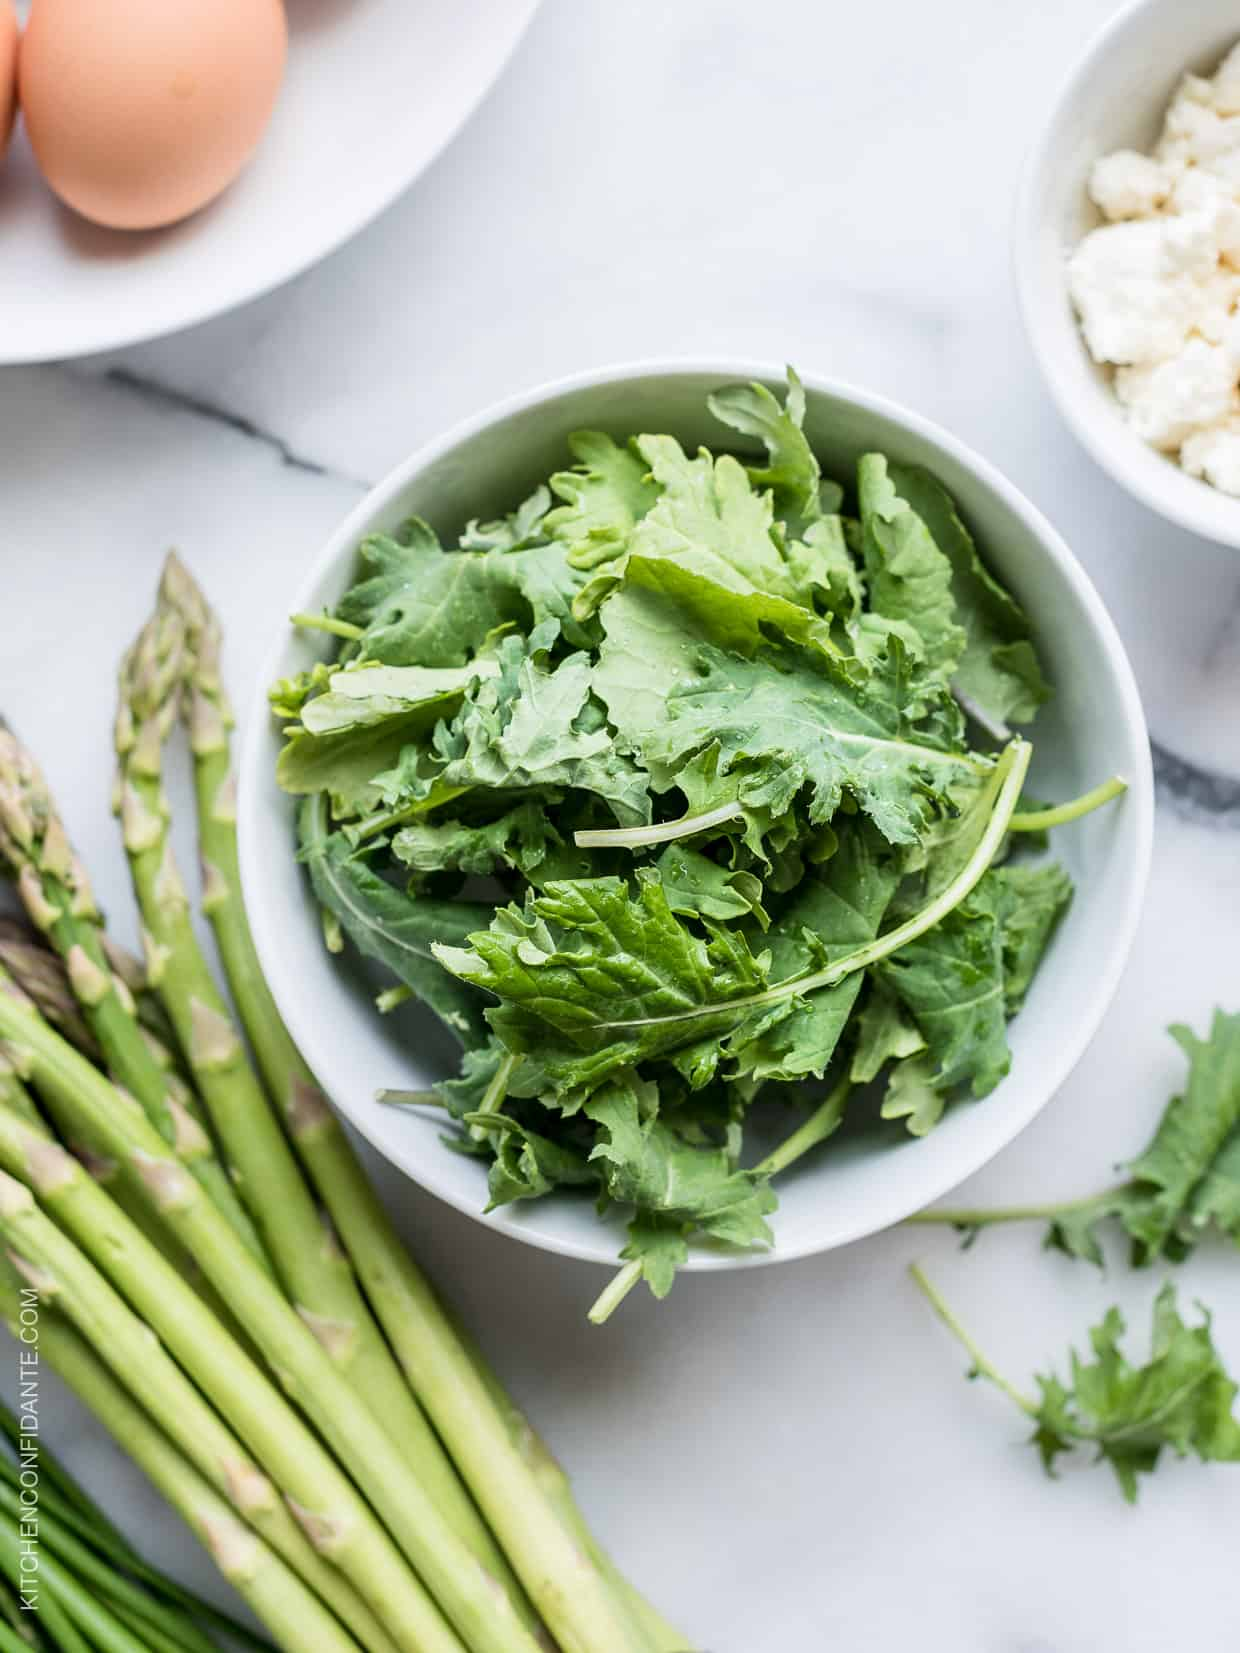 A white bowl filled with fresh kale alongside stalks of asparagus.